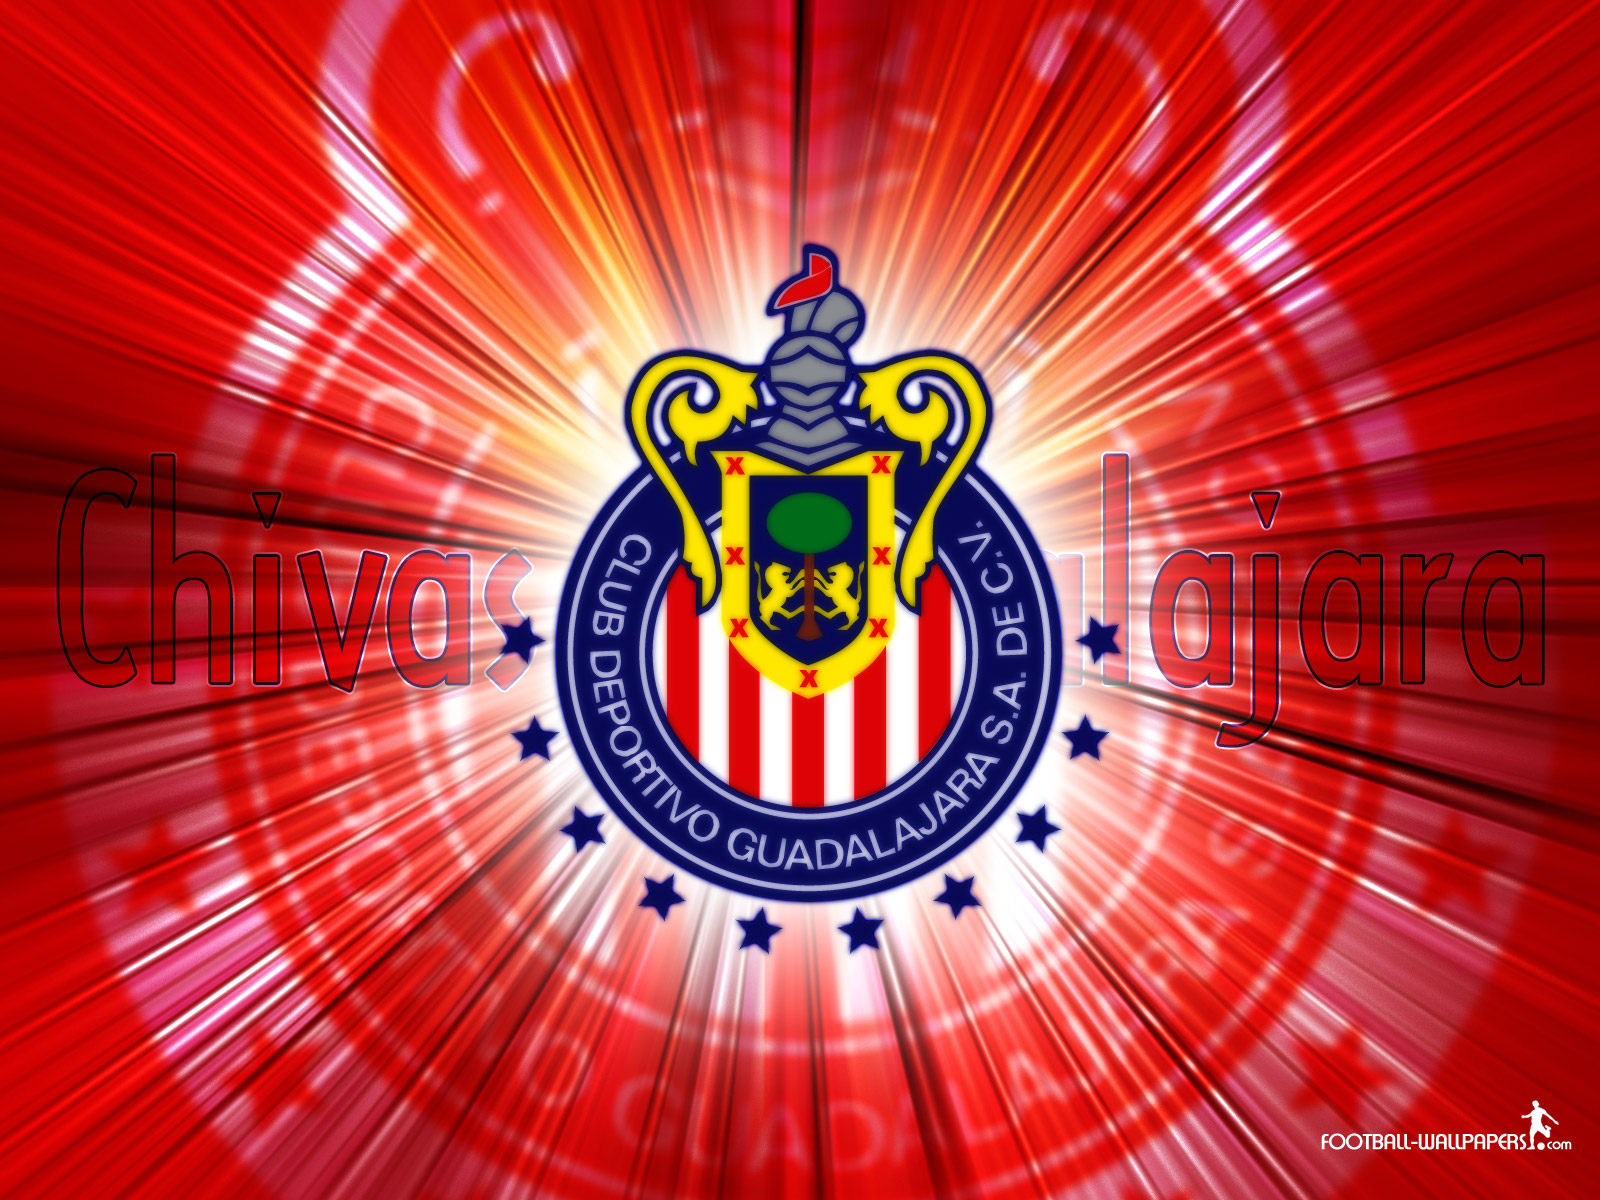 1600x1200 - C.D. Guadalajara Wallpapers 22